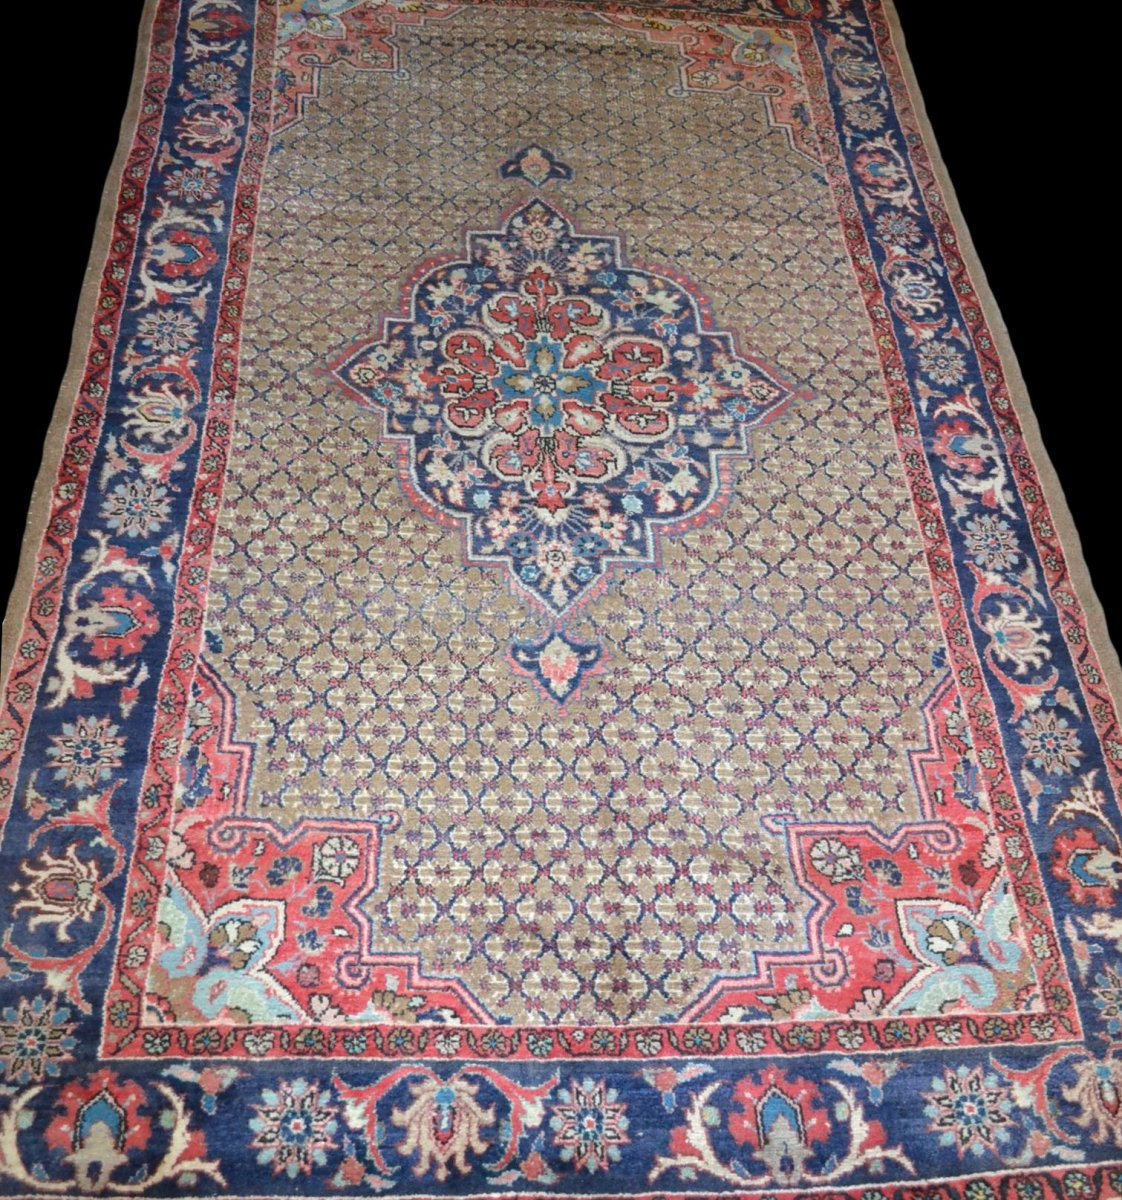 Persian Sarough Rug, 157 Cm X 273 Cm, Iran, Hand Knotted Wool, Perfect Condition, Around 1970